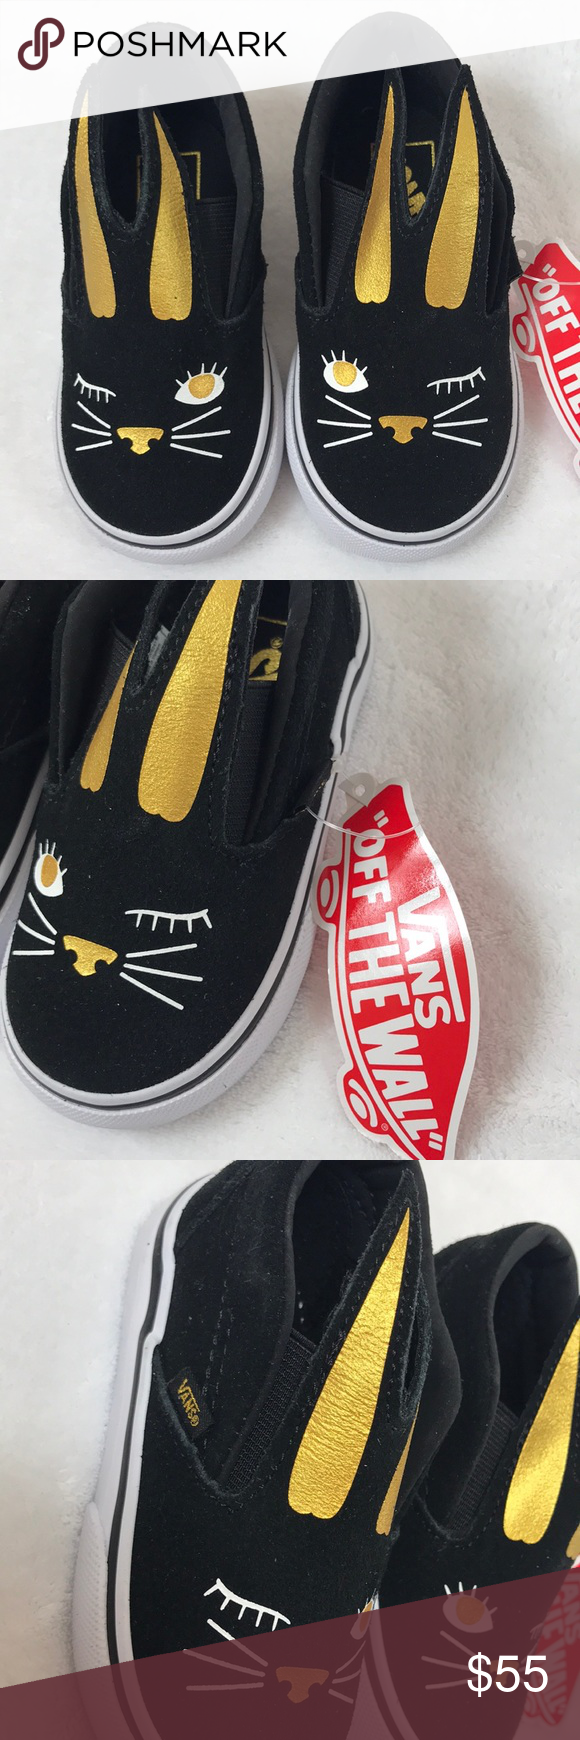 50d6ee1bf Vans Slip On Bunny Black Gold baby shoes size 5.5 Vans Slip On Bunny Black  Gold toddler baby shoes size 5.5. Winking bunny face on front of shoes.